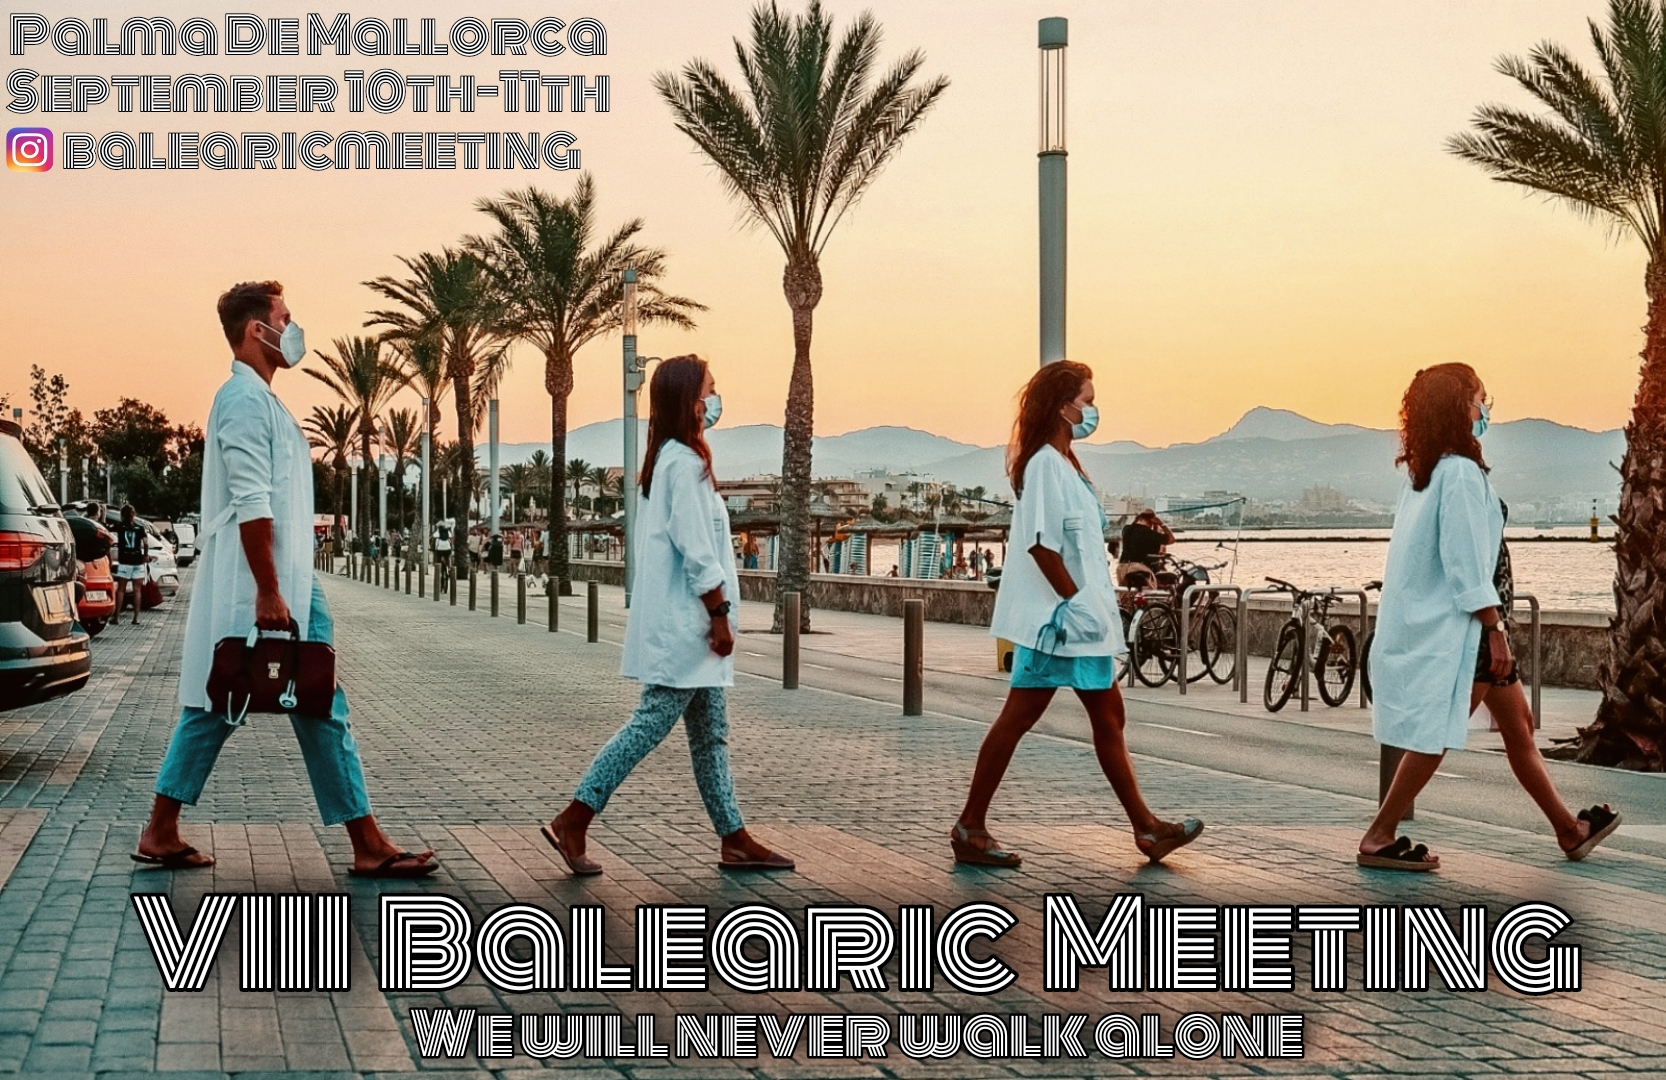 Cartel Balearic Meeting